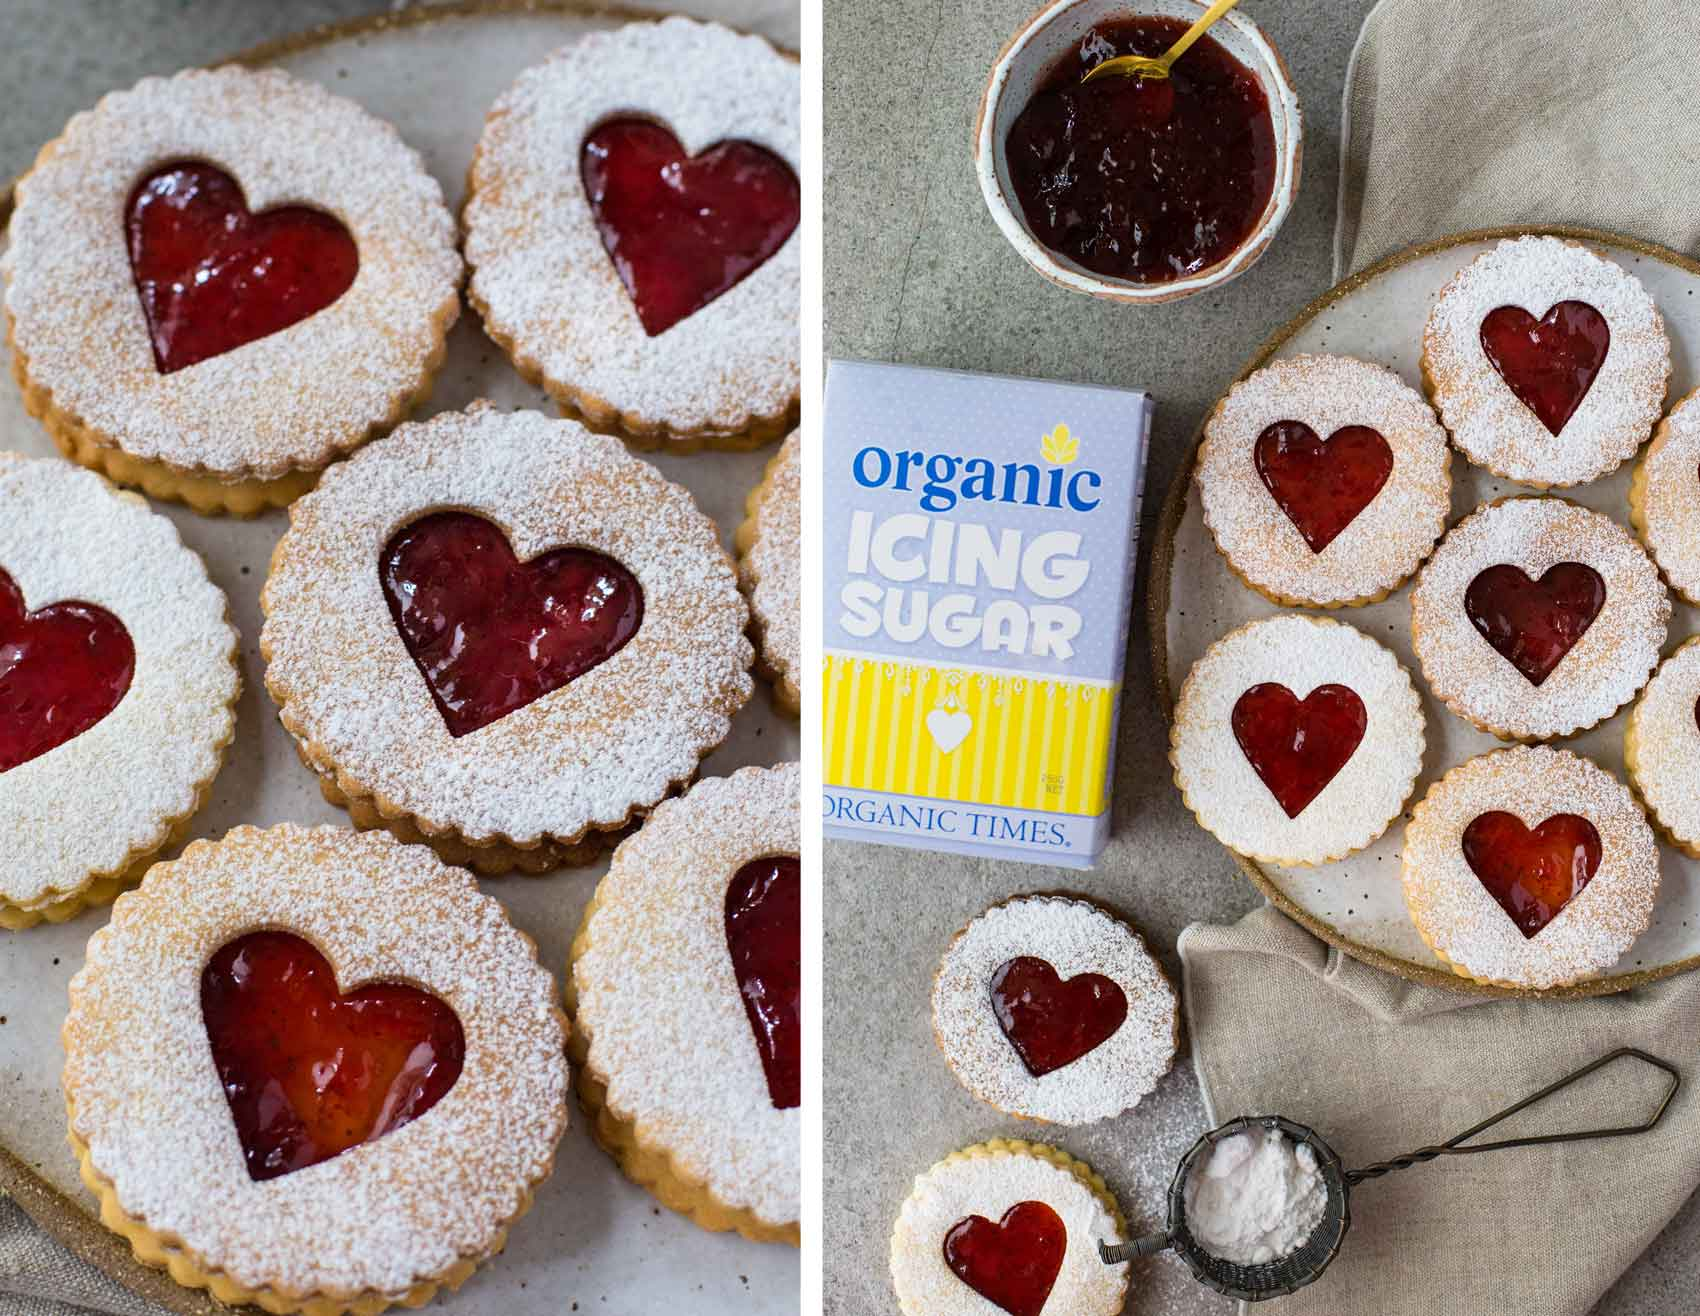 Organic Times Icing Sugar next to a plate of Valentine's Day Shortbread